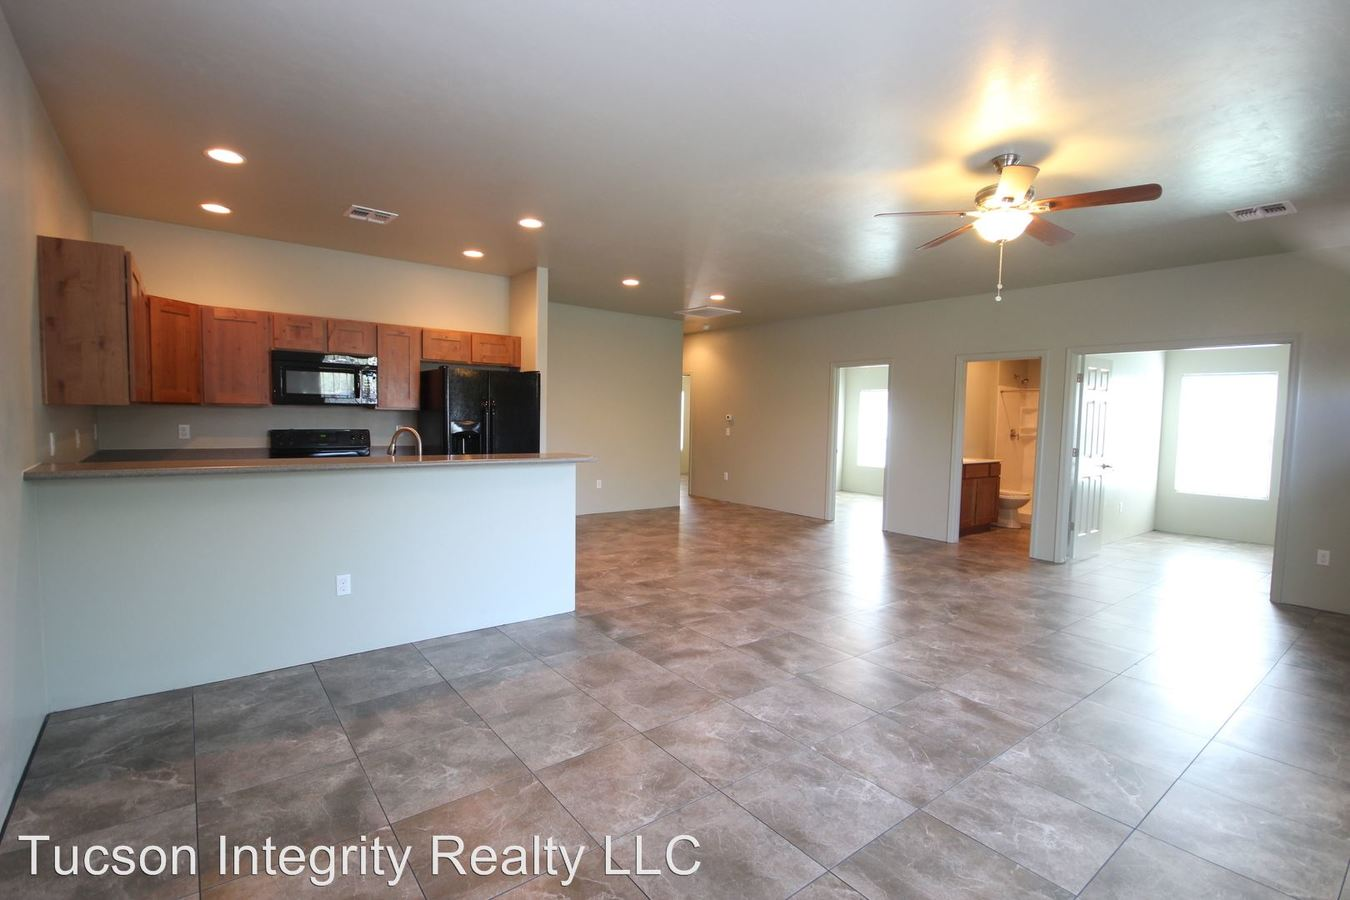 4 Bedrooms 2 Bathrooms House for rent at 1701 & 1709 E. Miles St. in Tucson, AZ